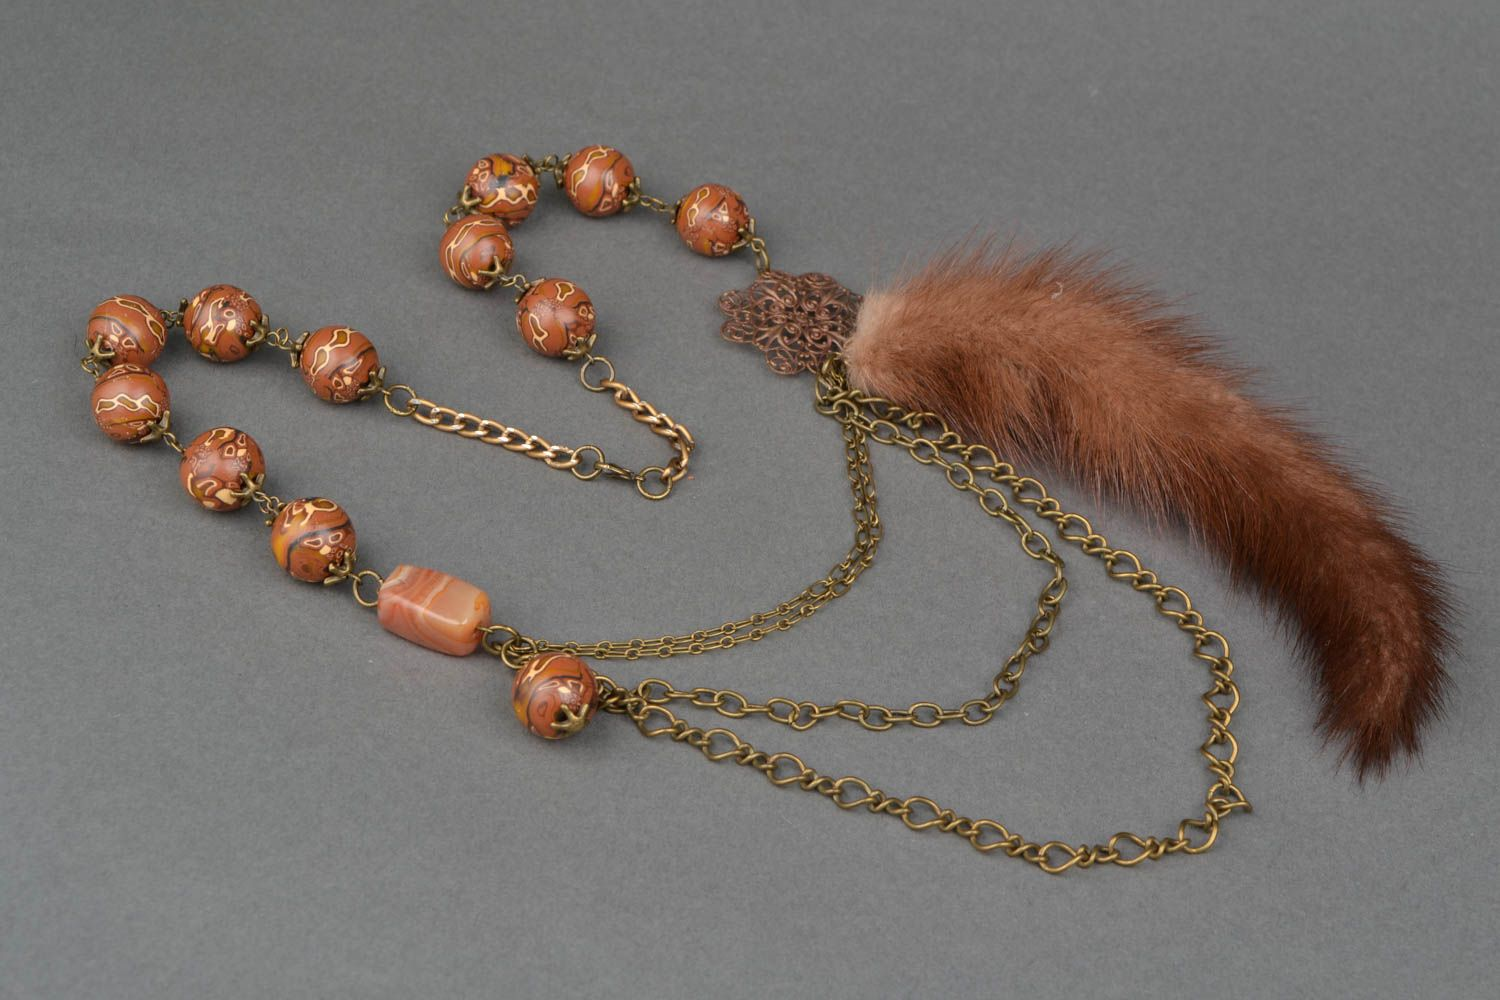 Bead necklace with natural stone and mink fur photo 4